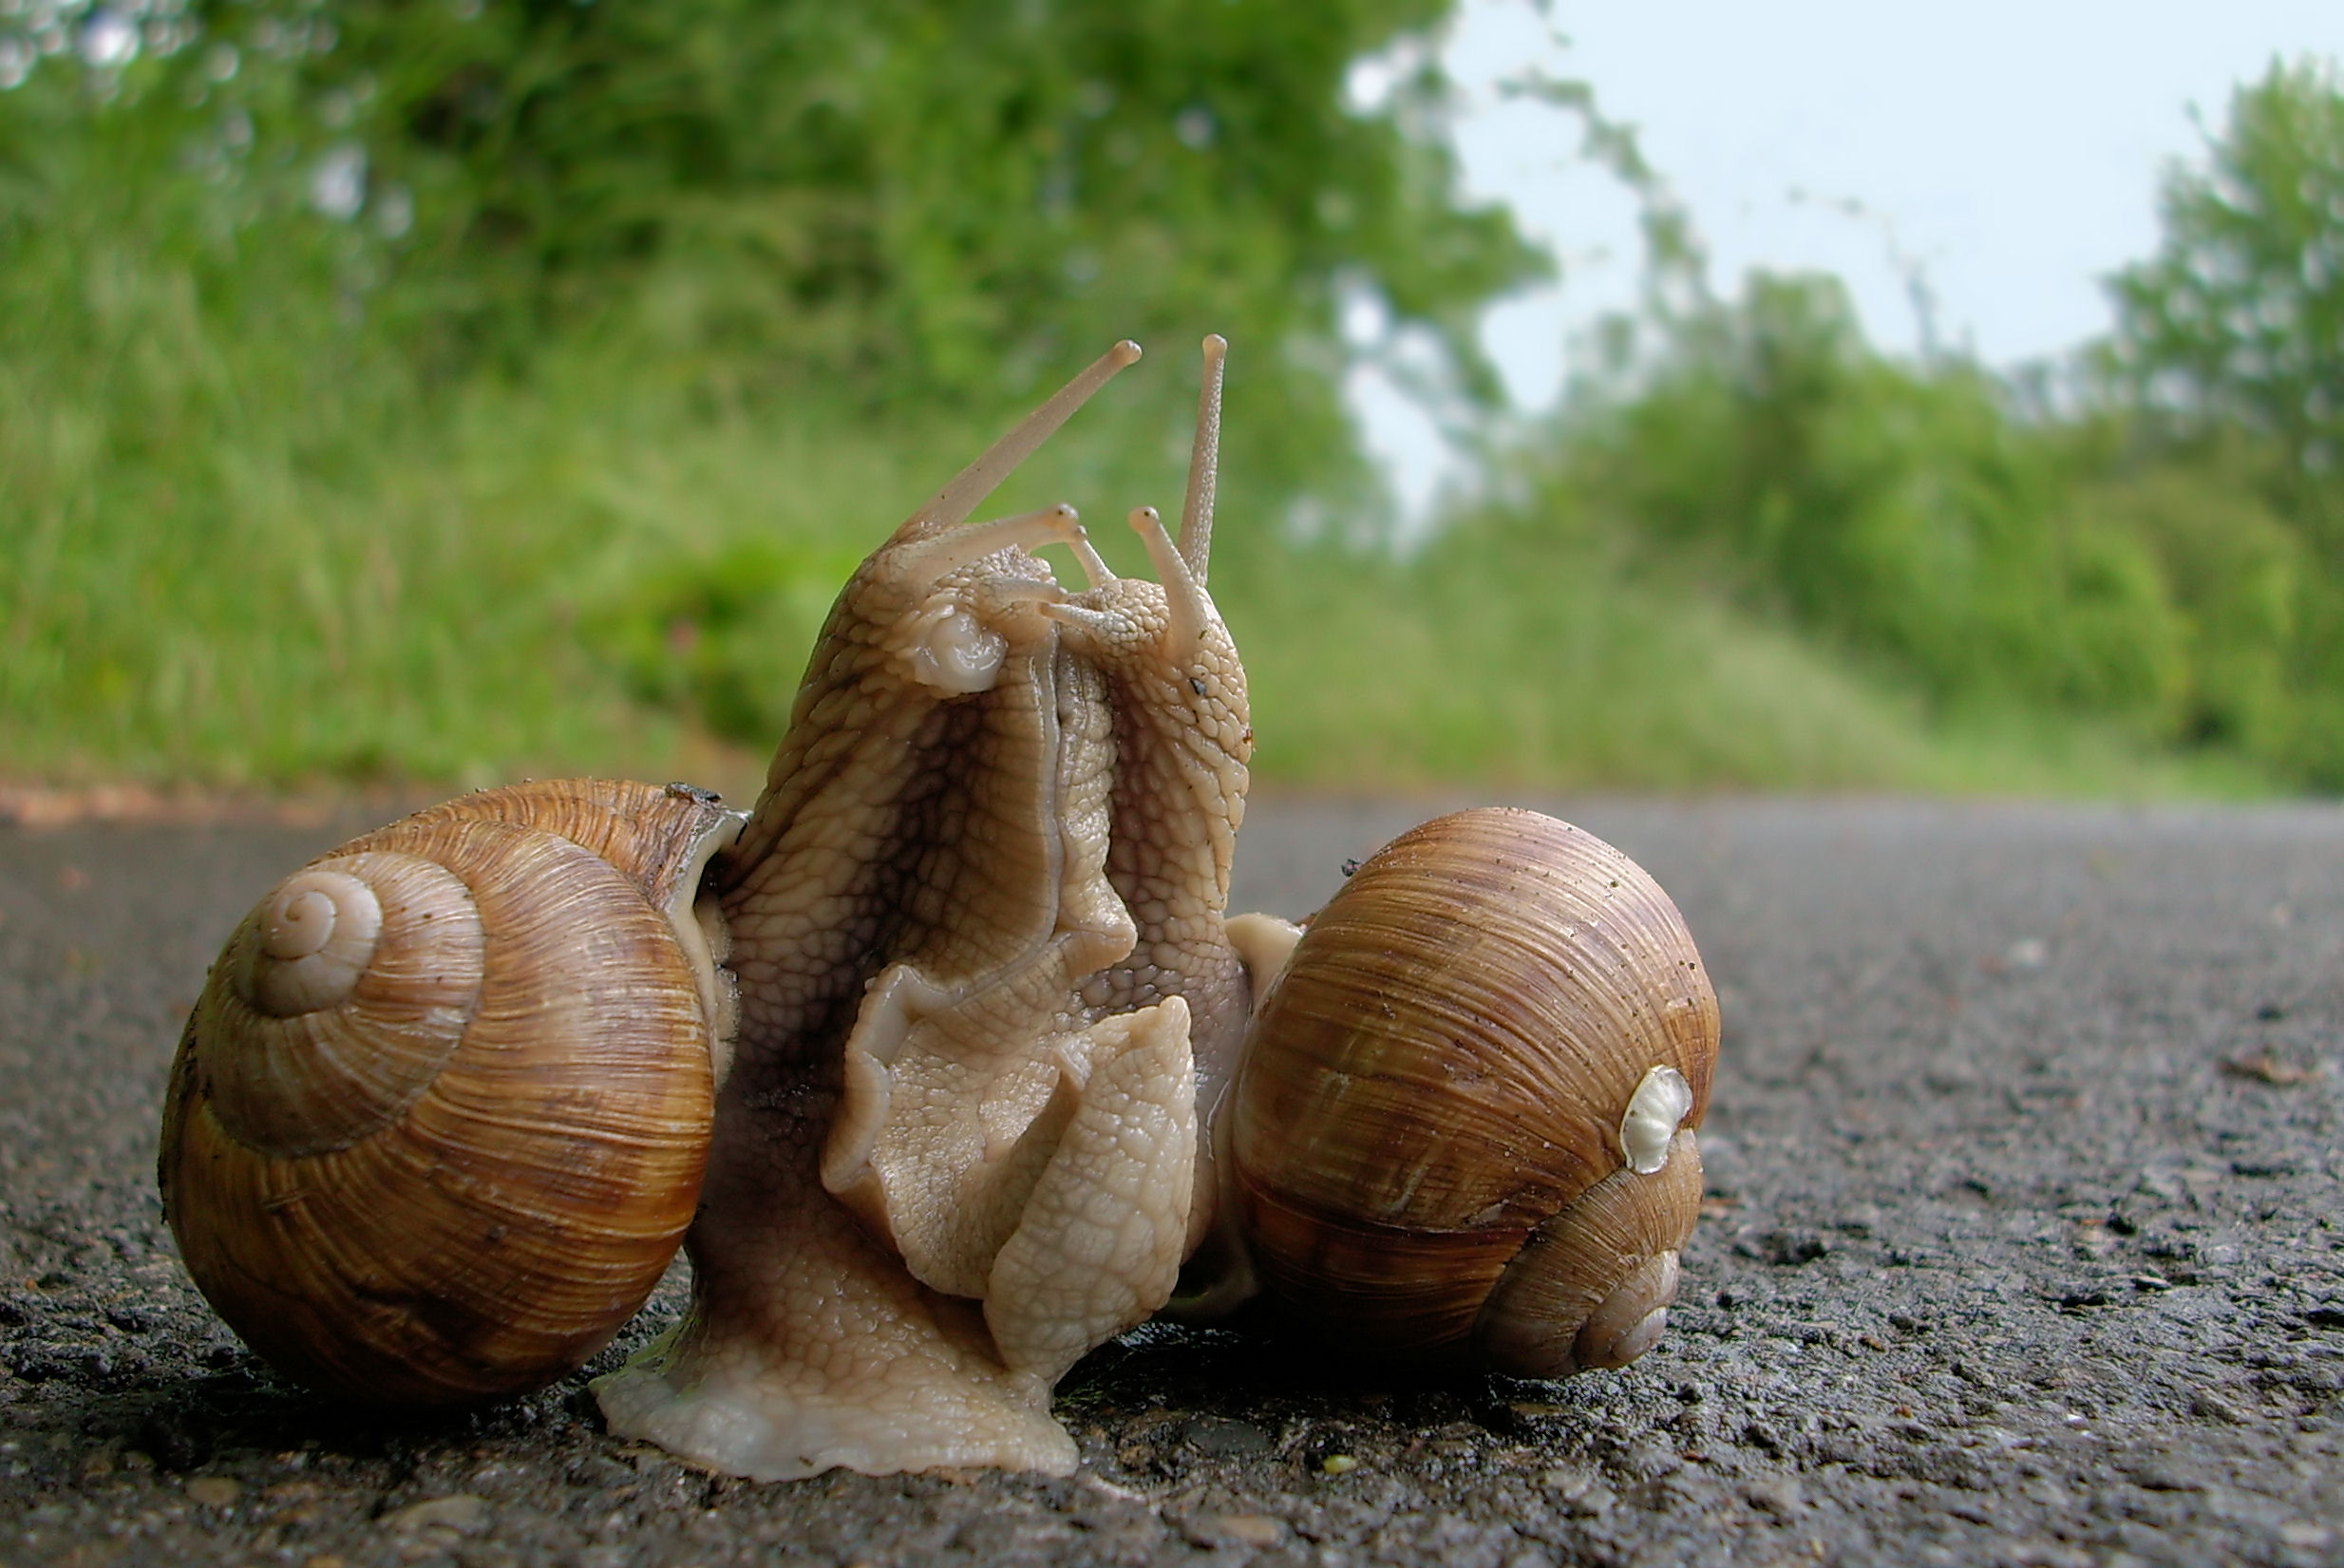 Snails reproduce asexually